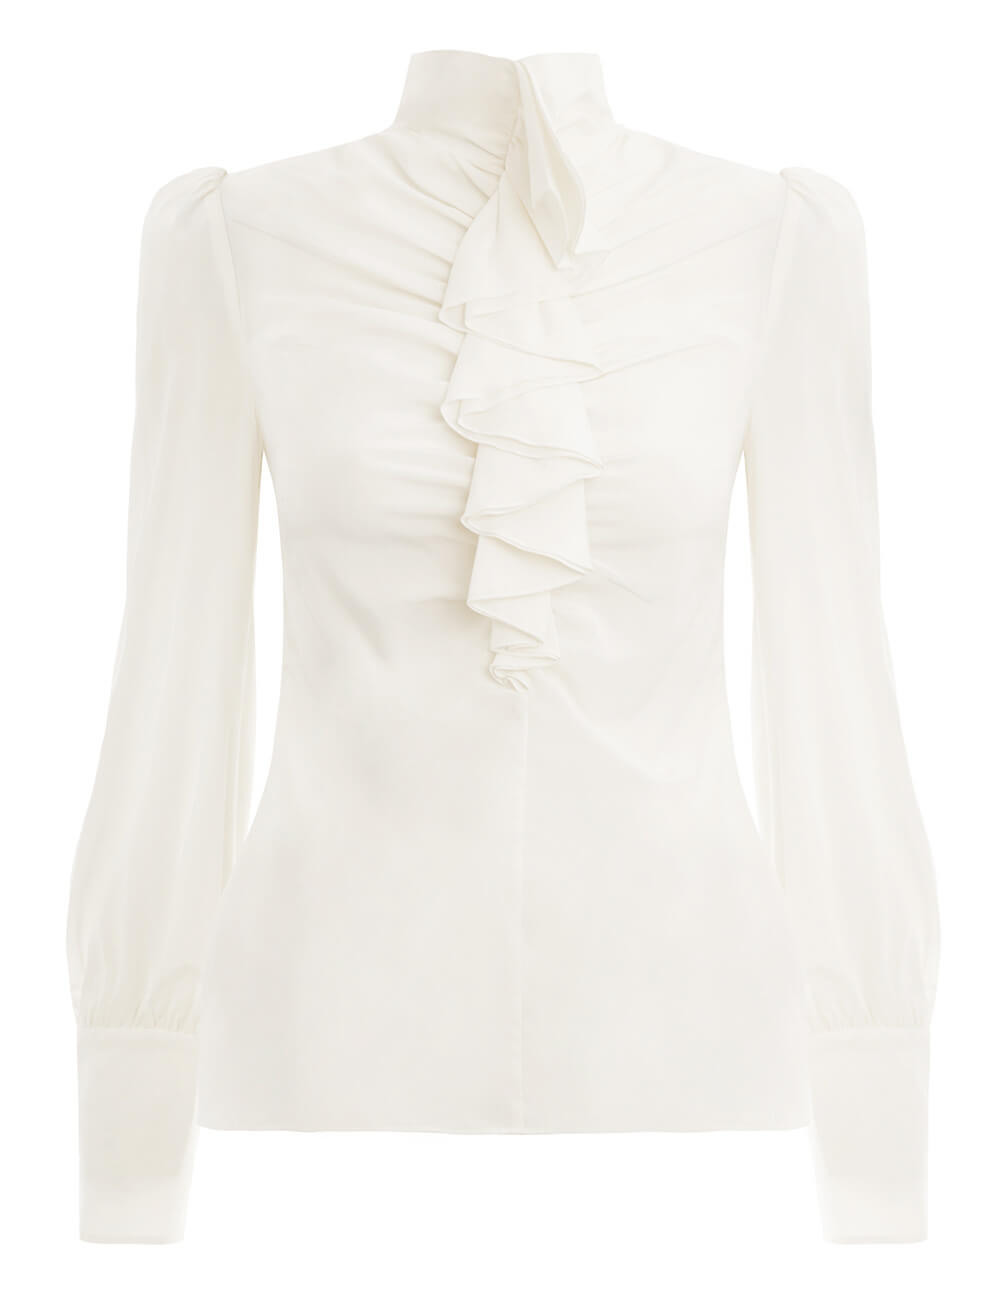 Espionage Cinched Blouse